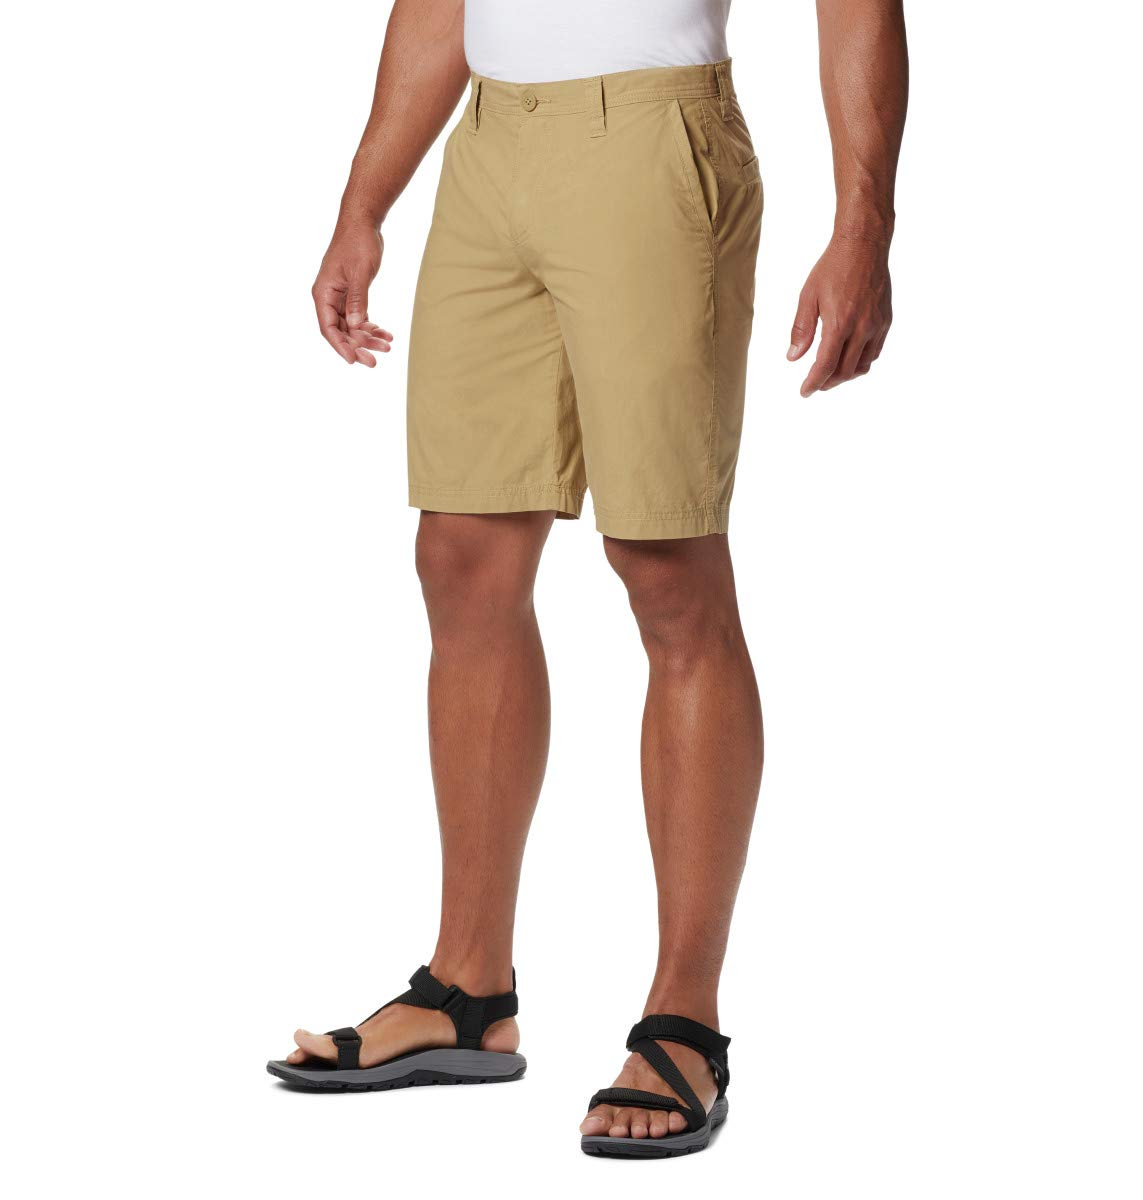 Columbia Big and Tall Men's Washed Out Chino Short, Crouton, 30x8 by Columbia